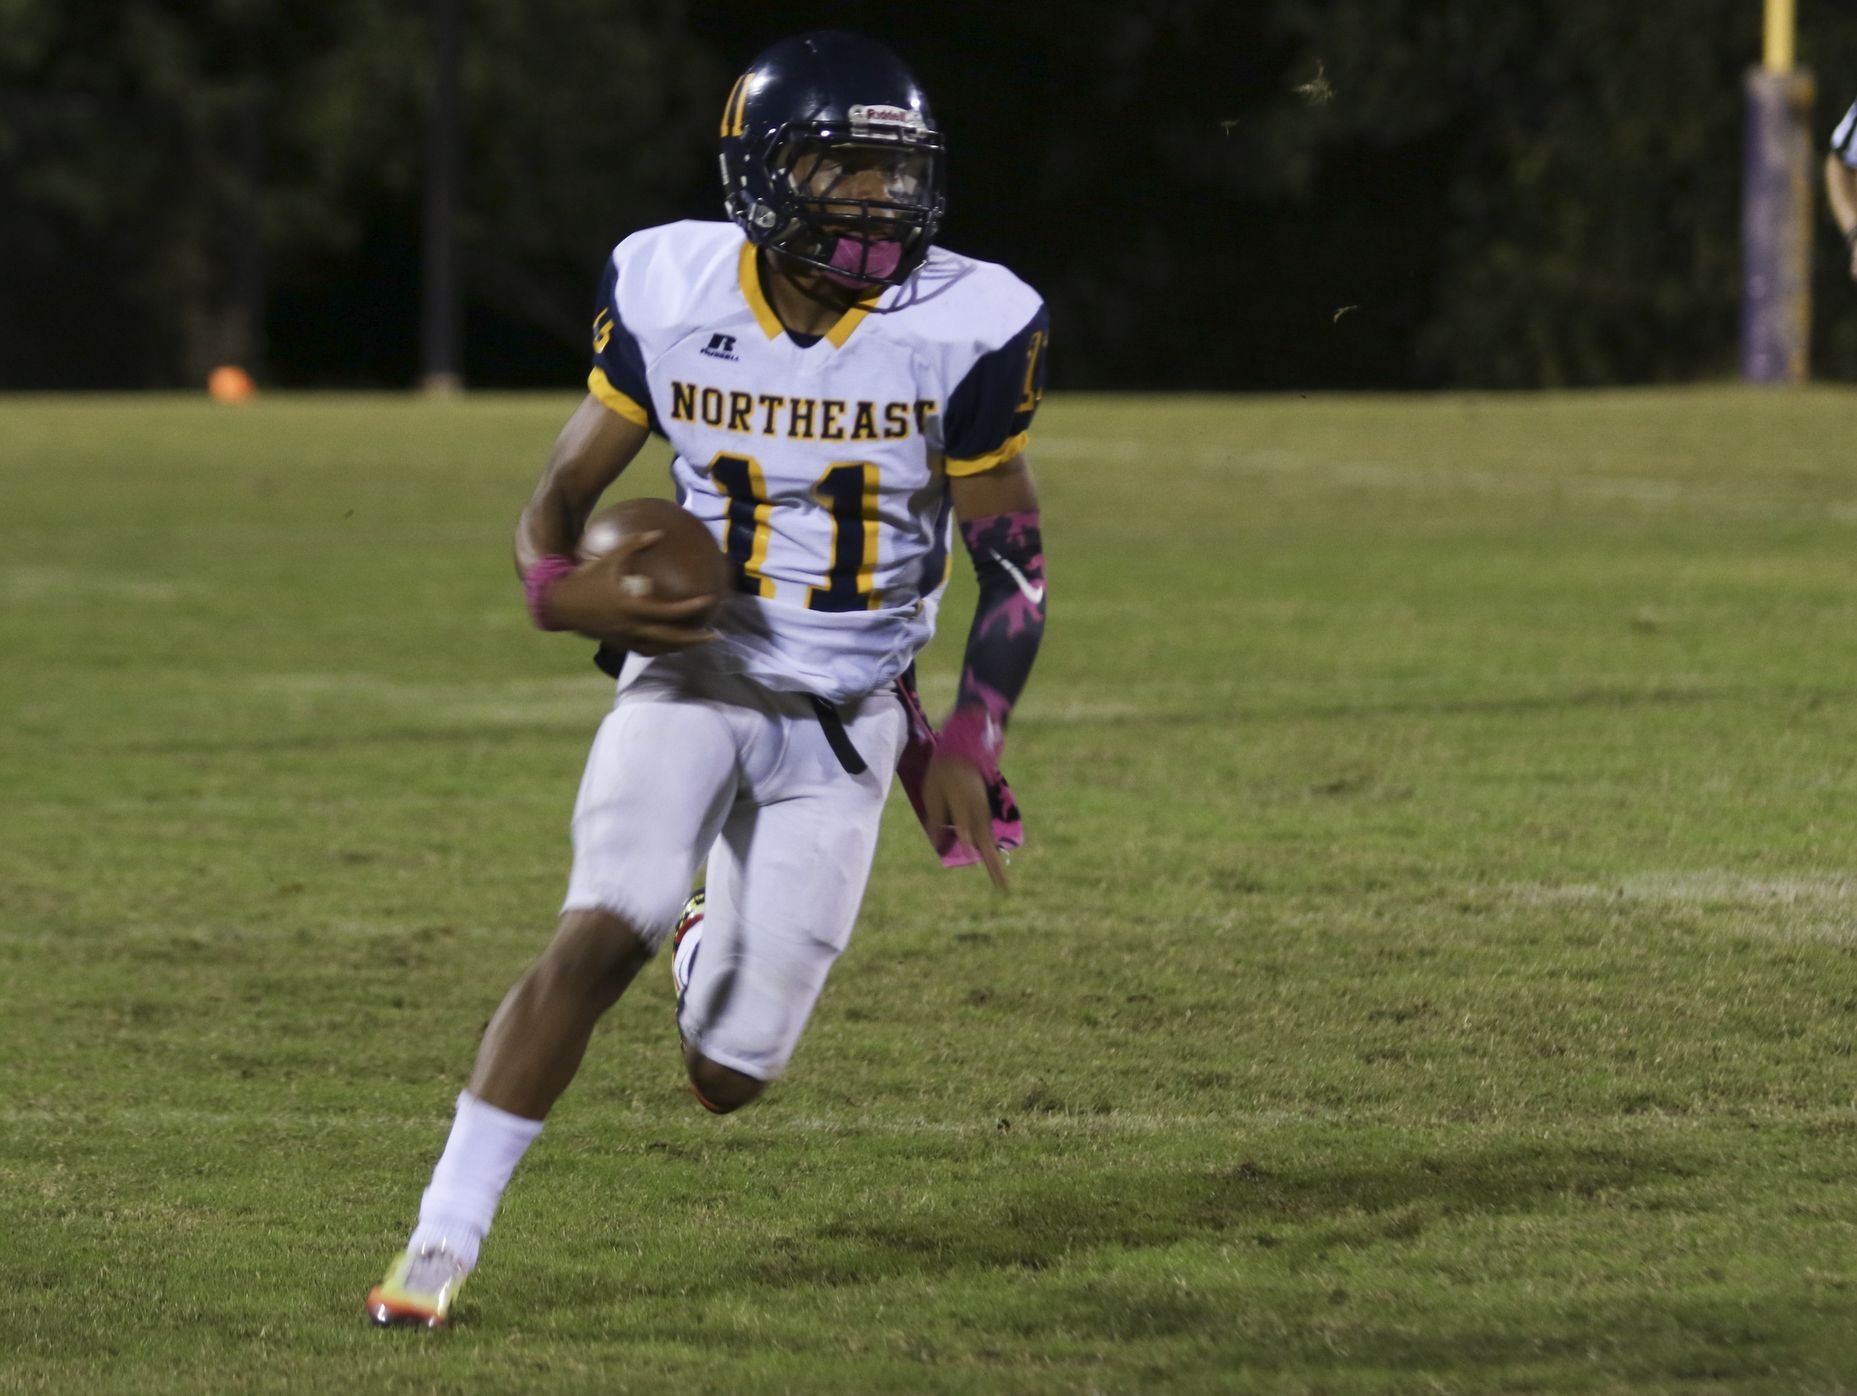 Northeast junior Gus Antoine (11) ran for nearly 200 yards and four touchdowns on just 10 carries in Friday's win over Clarksville.